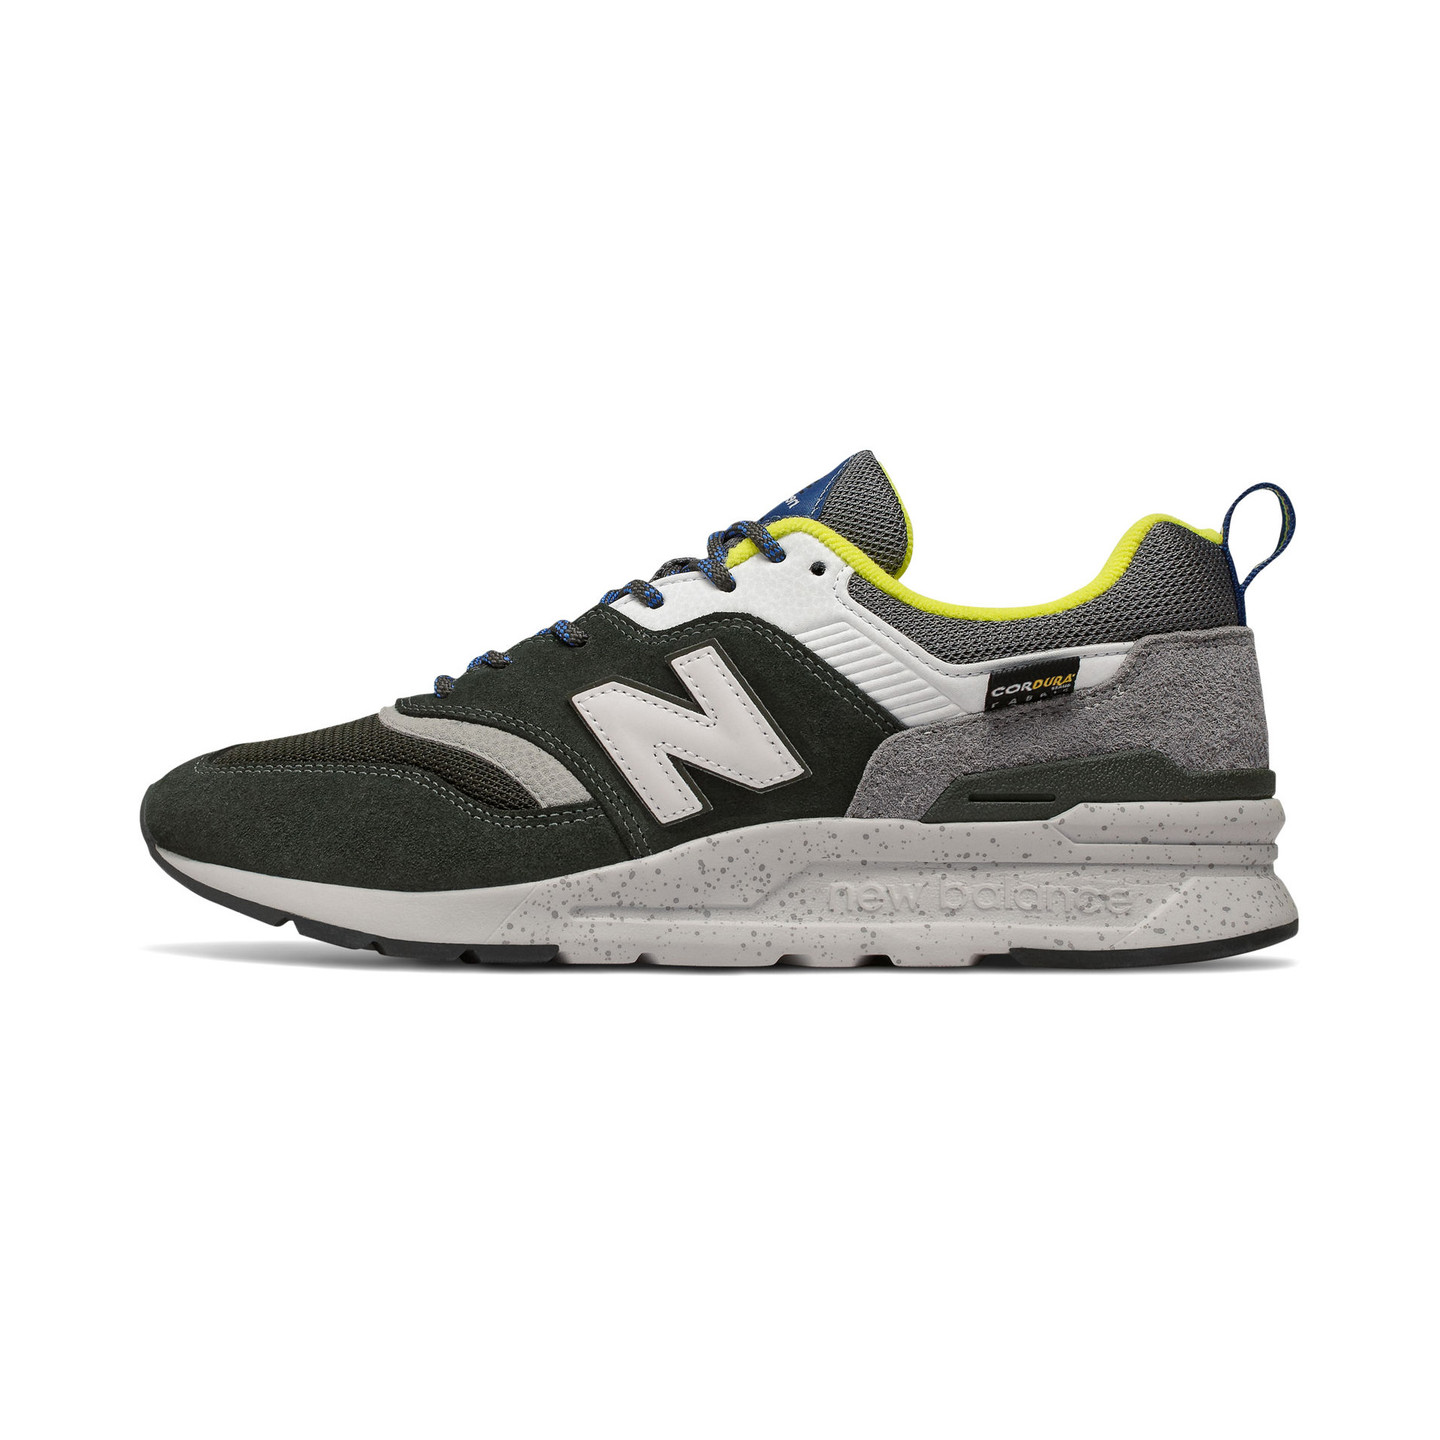 New Balance CM997 Dark Green / Citrus / Royal Blue CM997HFD